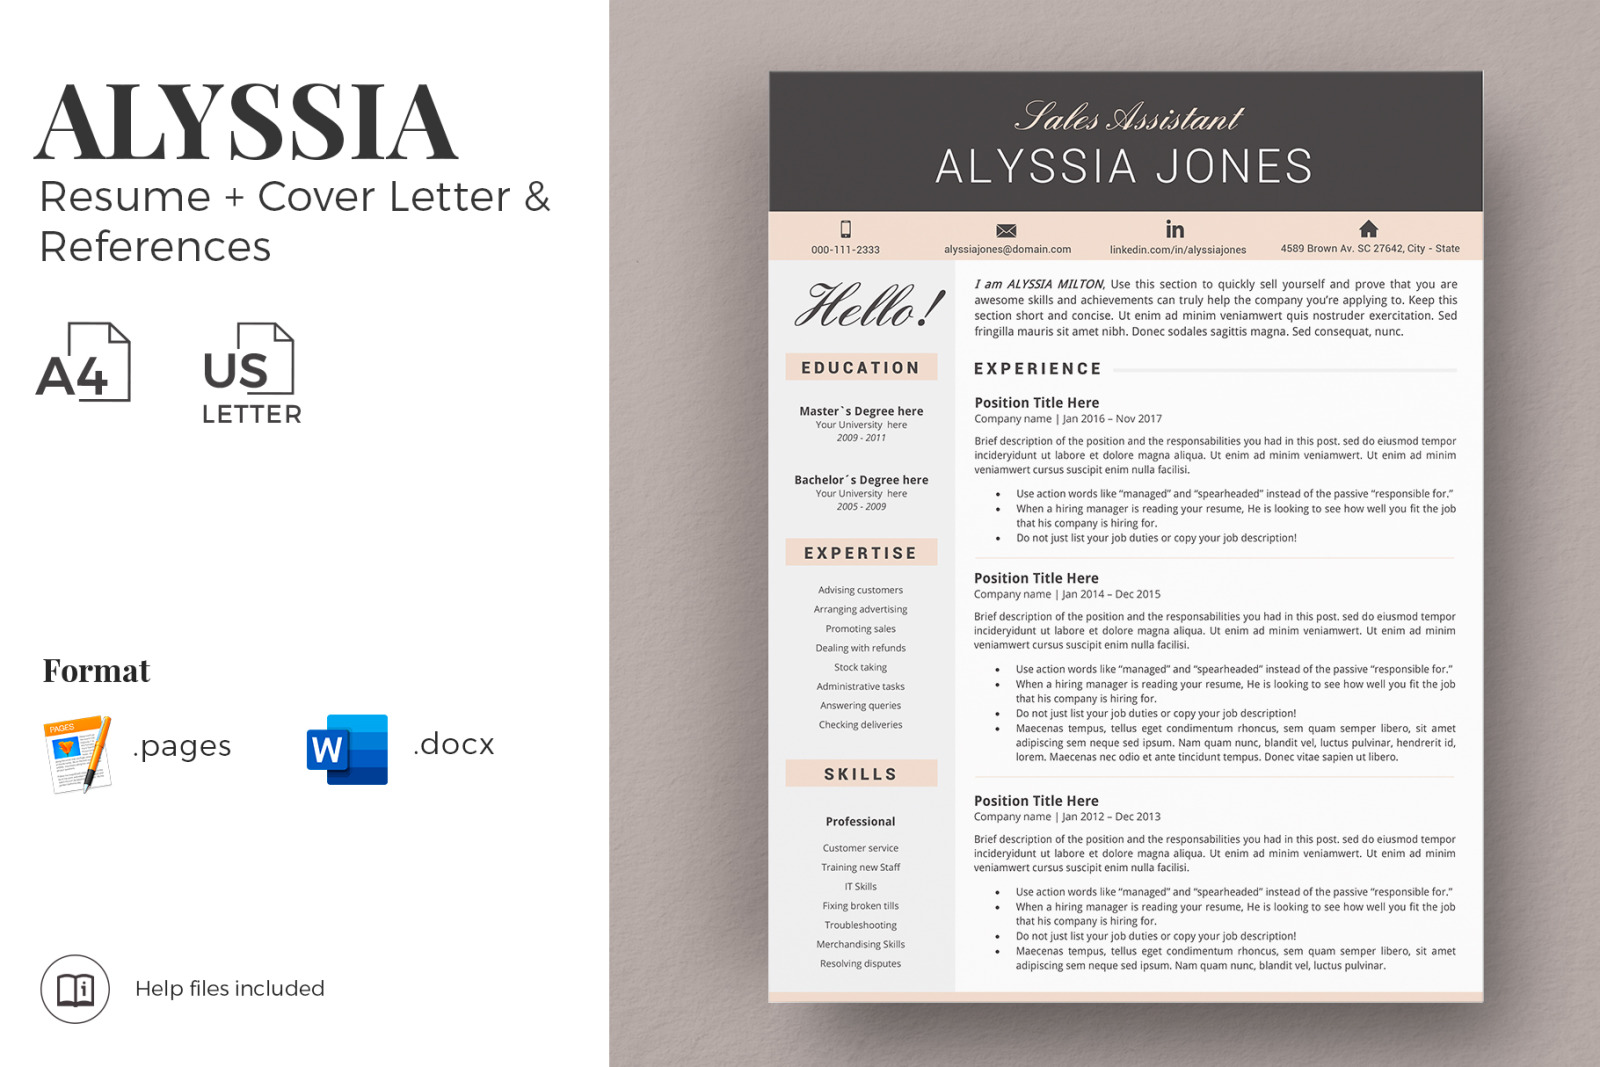 Cover Letter Template Docx from yi-files.s3.eu-west-1.amazonaws.com